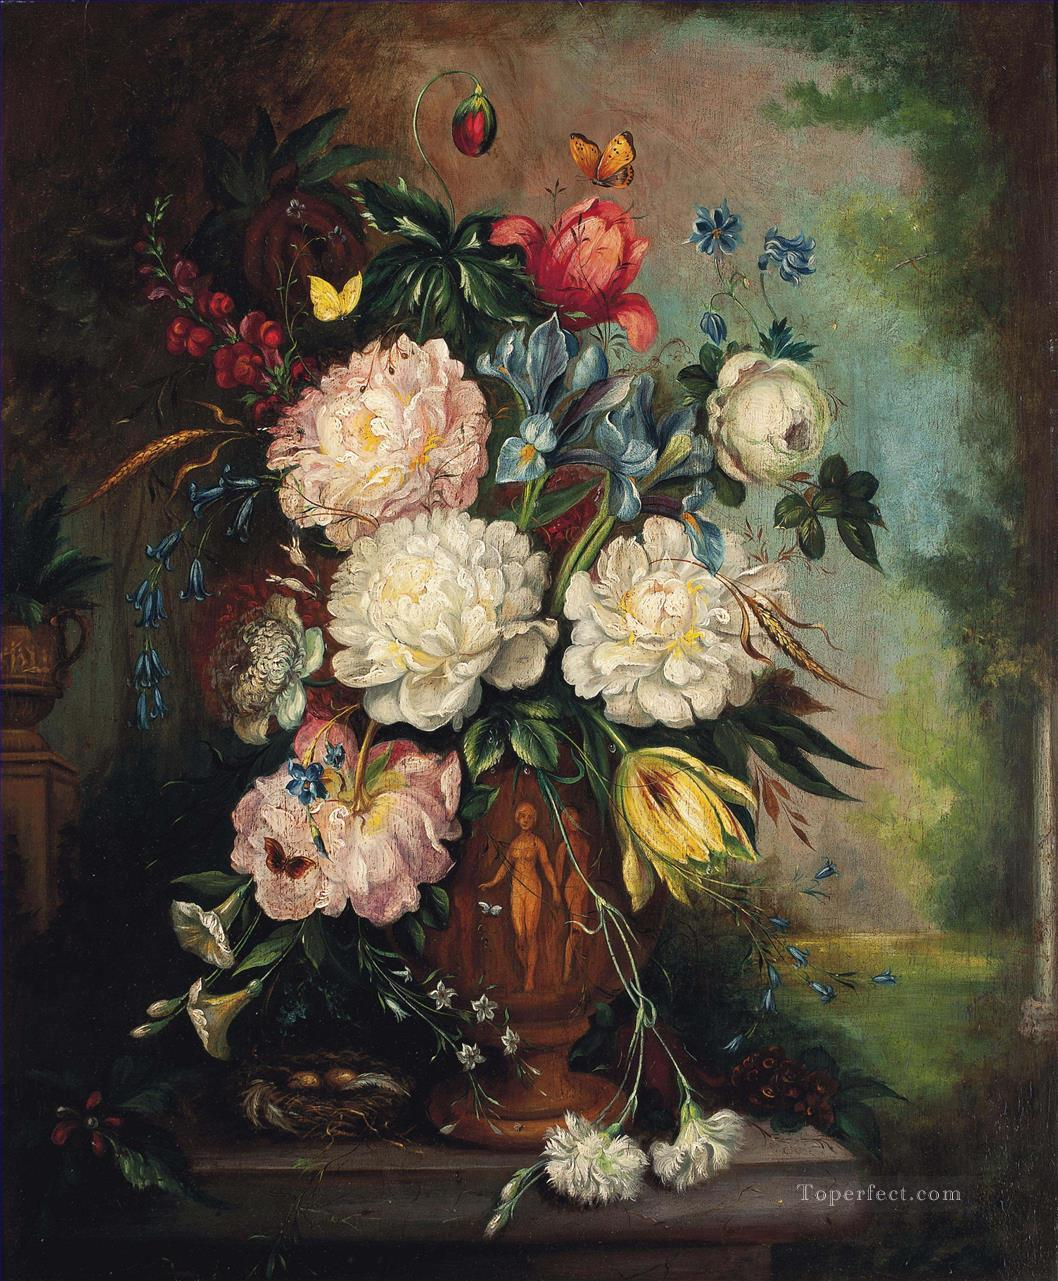 Roses peonies iris tulips carnations convolvulus and stocks in a sculpted vase Jan van Huysum classical flowers Oil Paintings